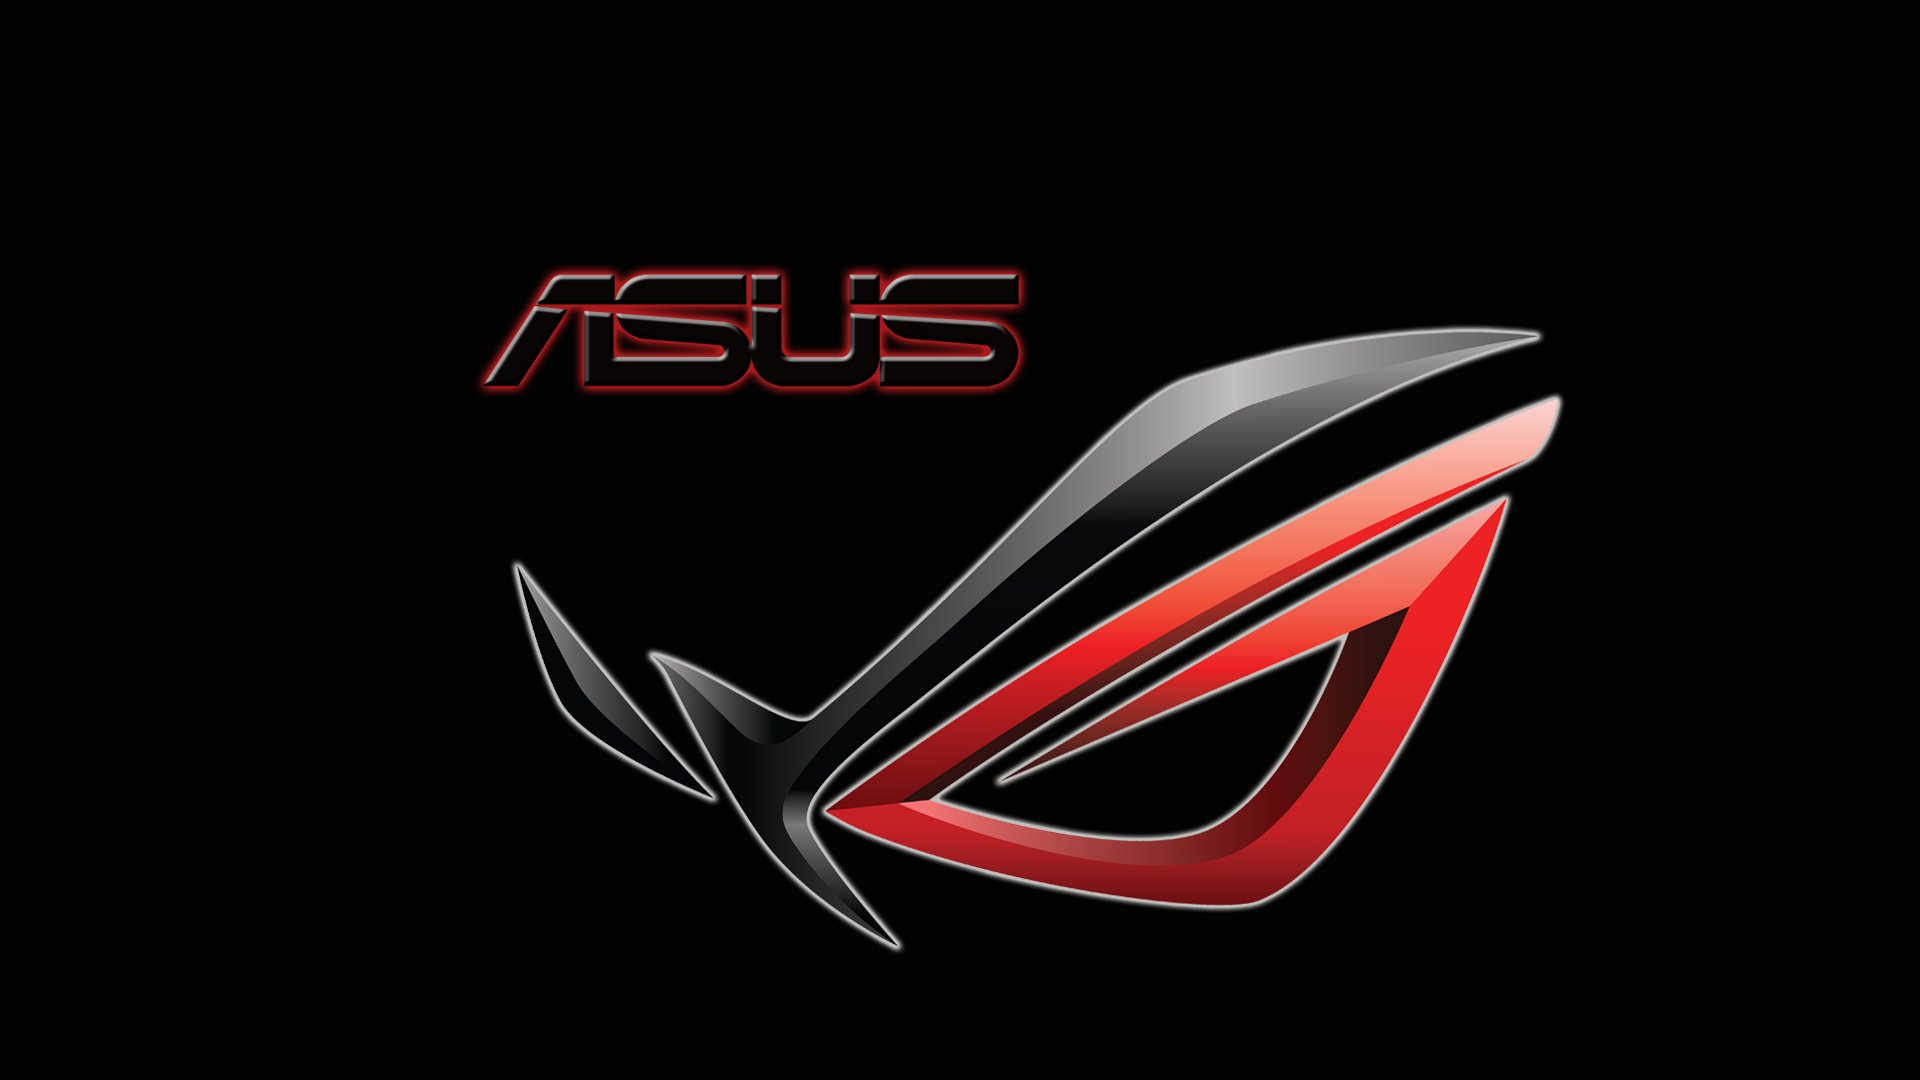 Wallpaper Simple Unik 167 Asus Hd Wallpapers Background Images Wallpaper Abyss